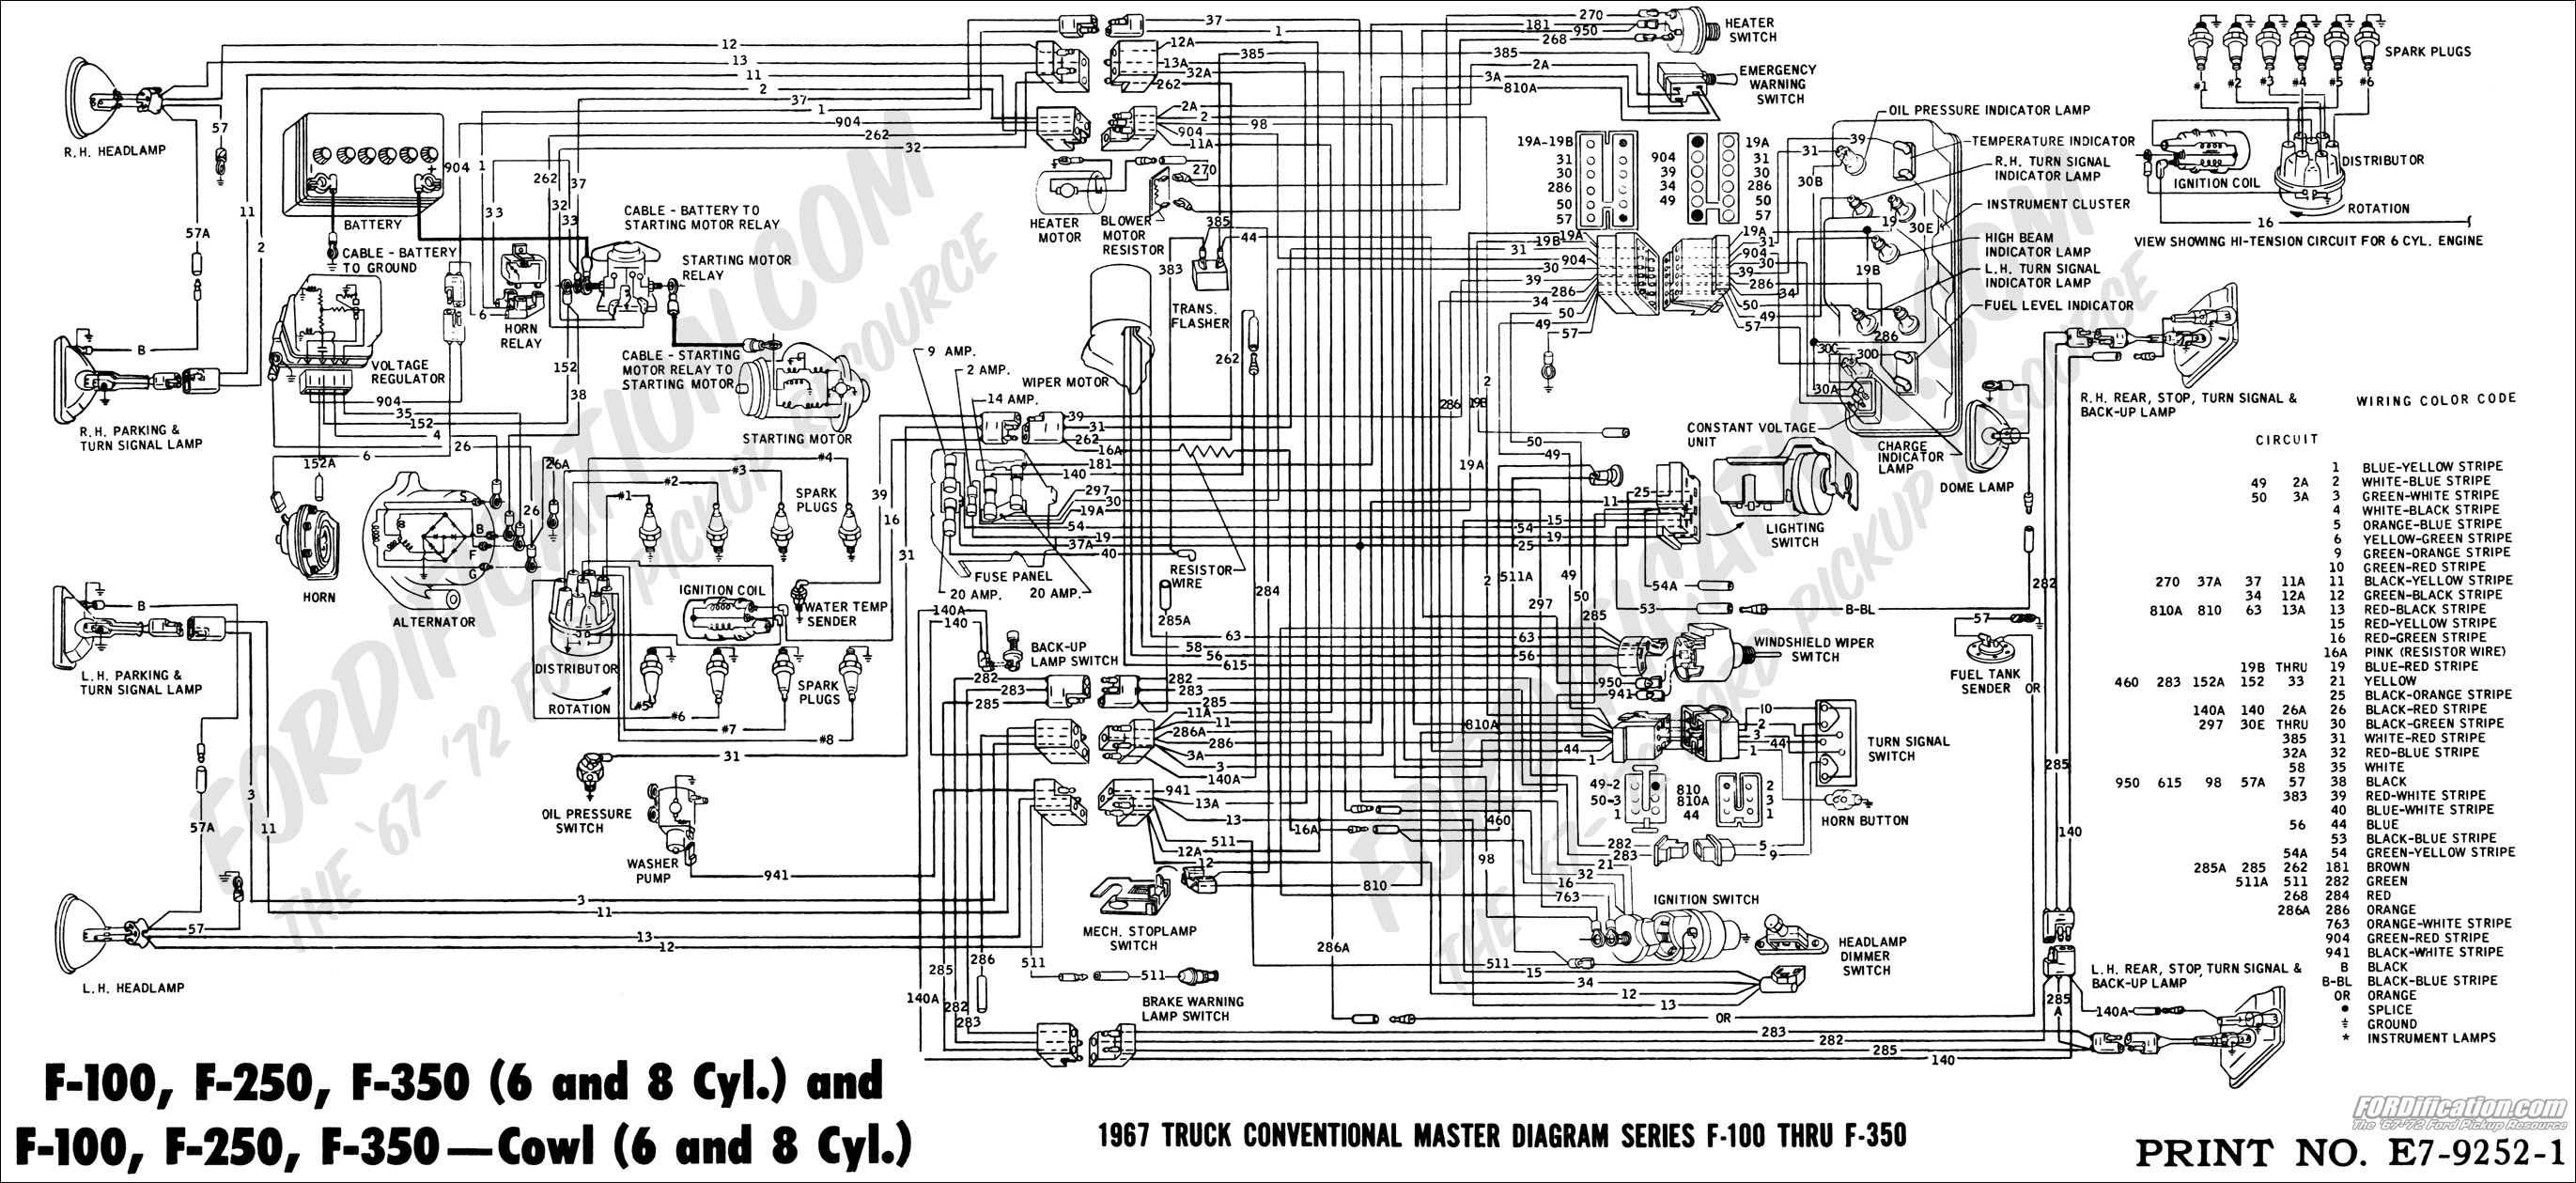 1987 ford f150 wiring wiring diagramswiring diagram 83 ford f 150 302 alternator wiring diagram detailed 1987